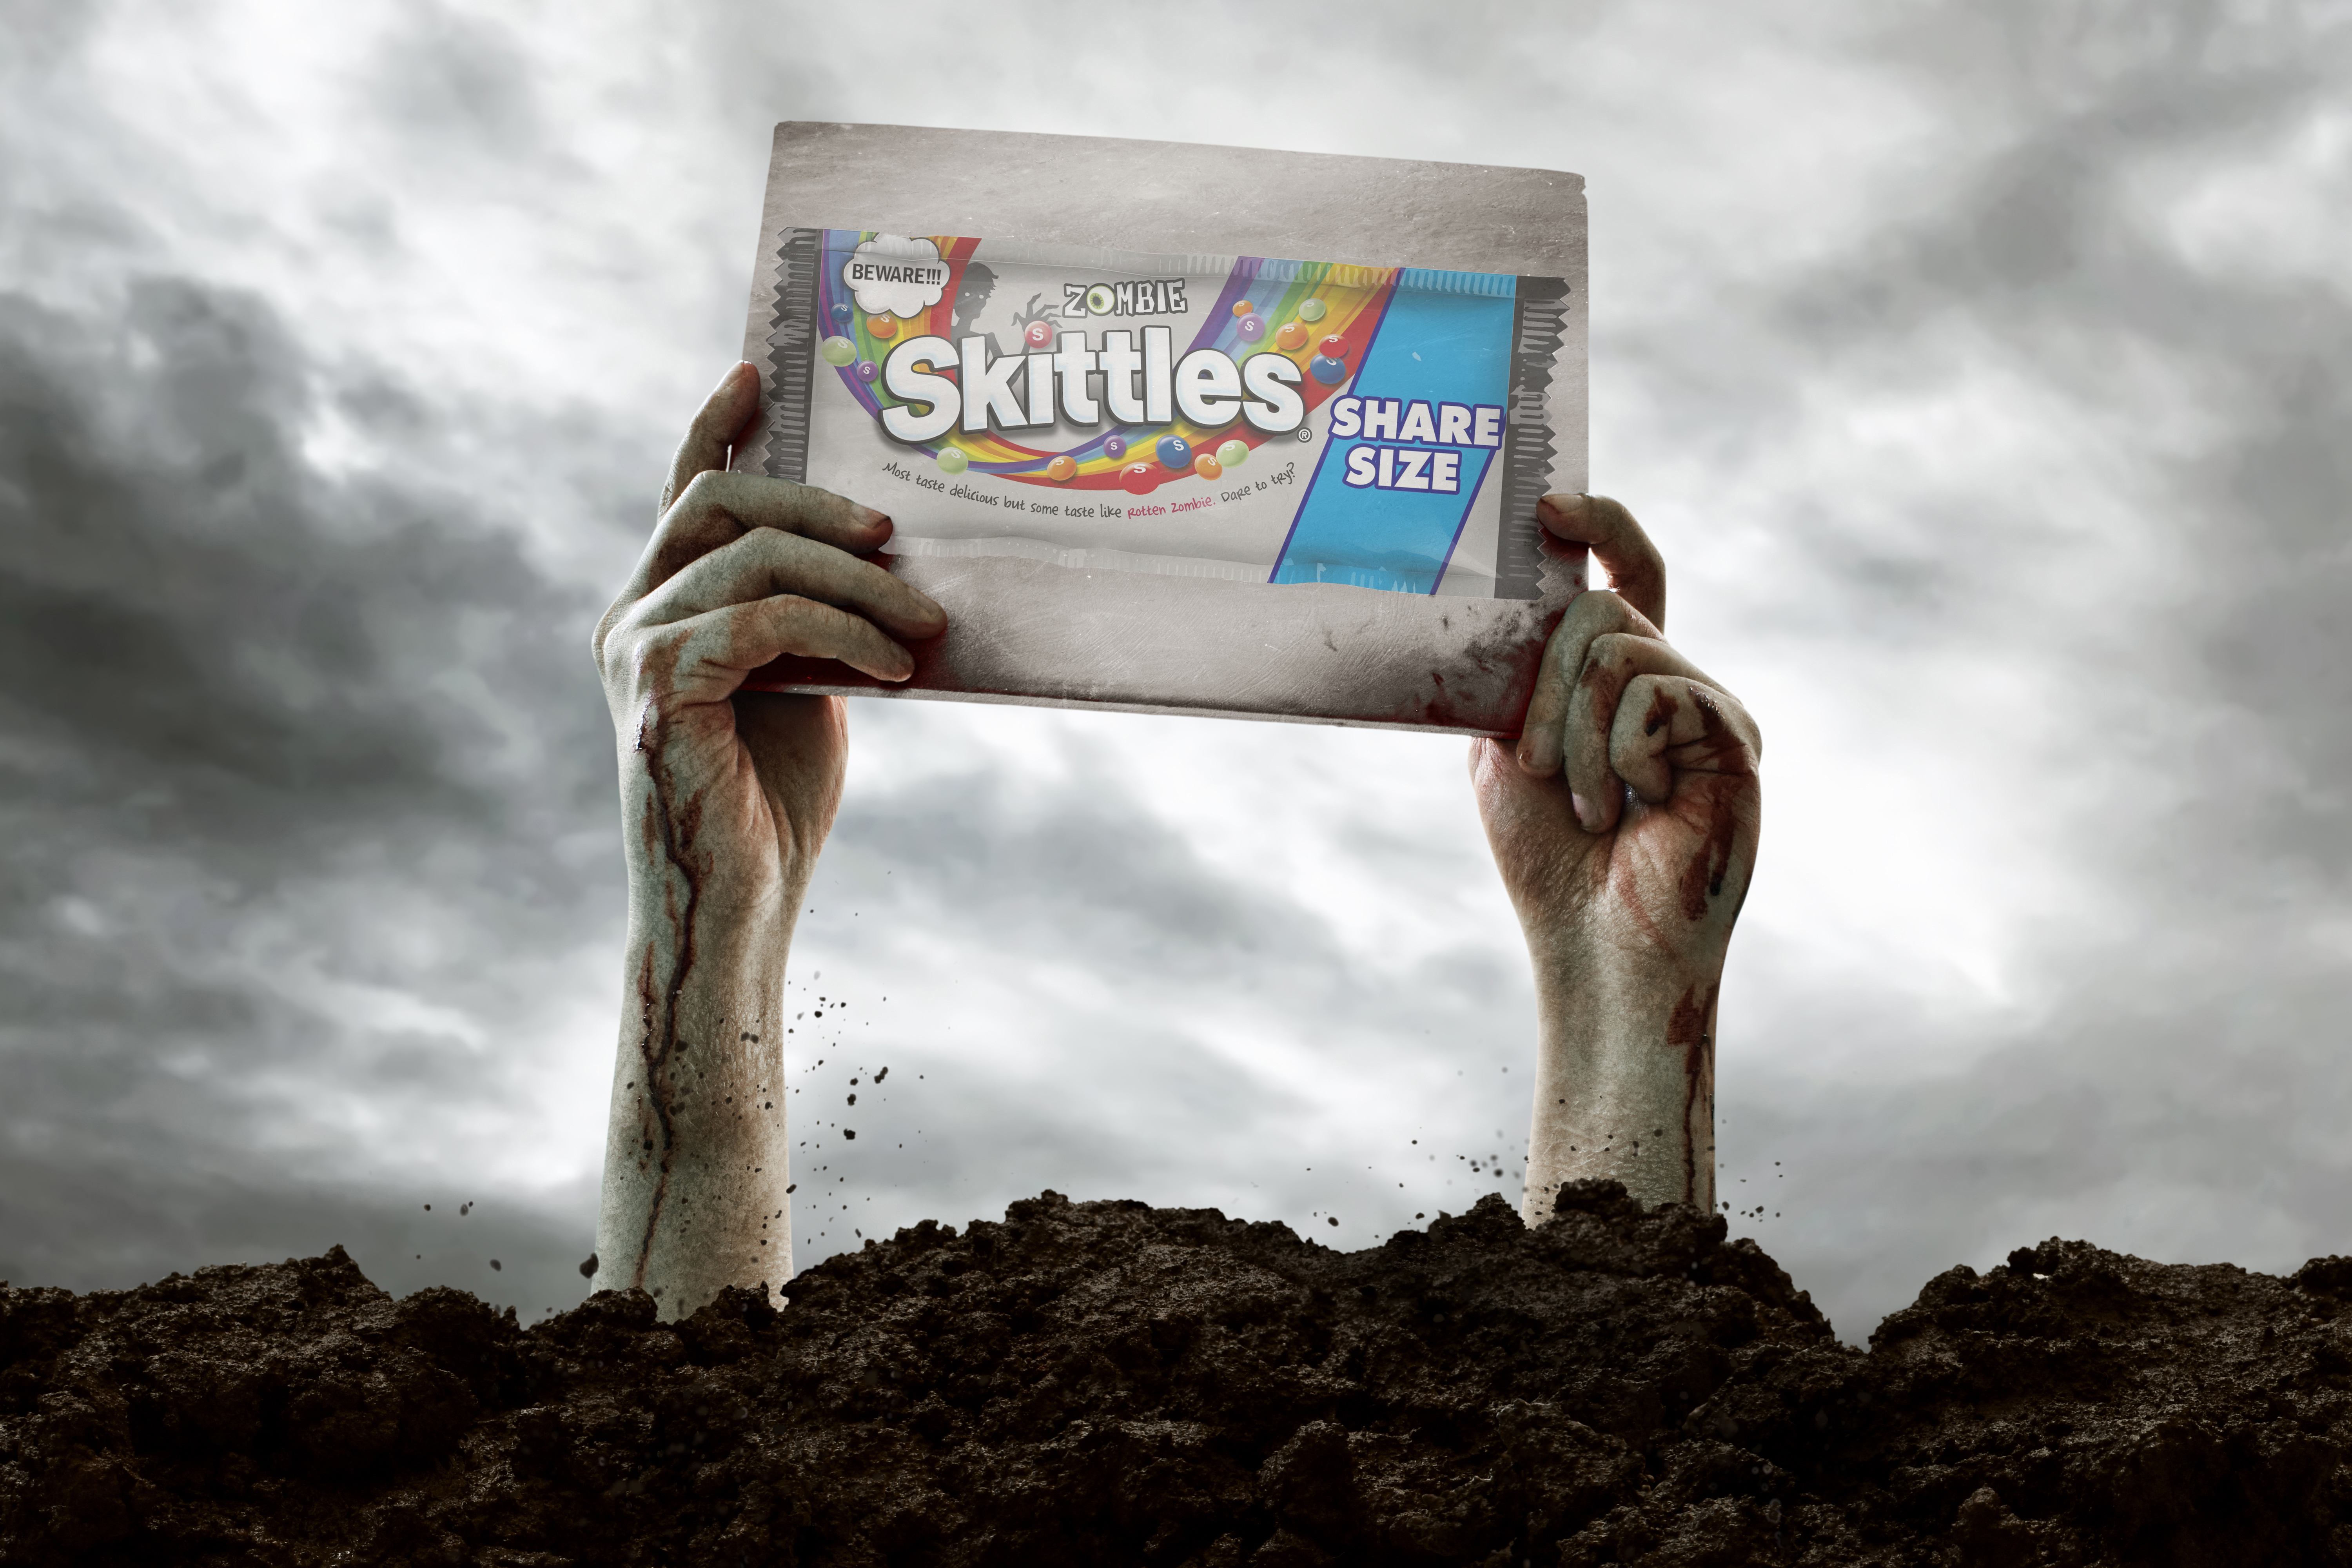 A pair of zombie hands sticking out of the dirt, holding up a sign with an image of Zombie Skittles.